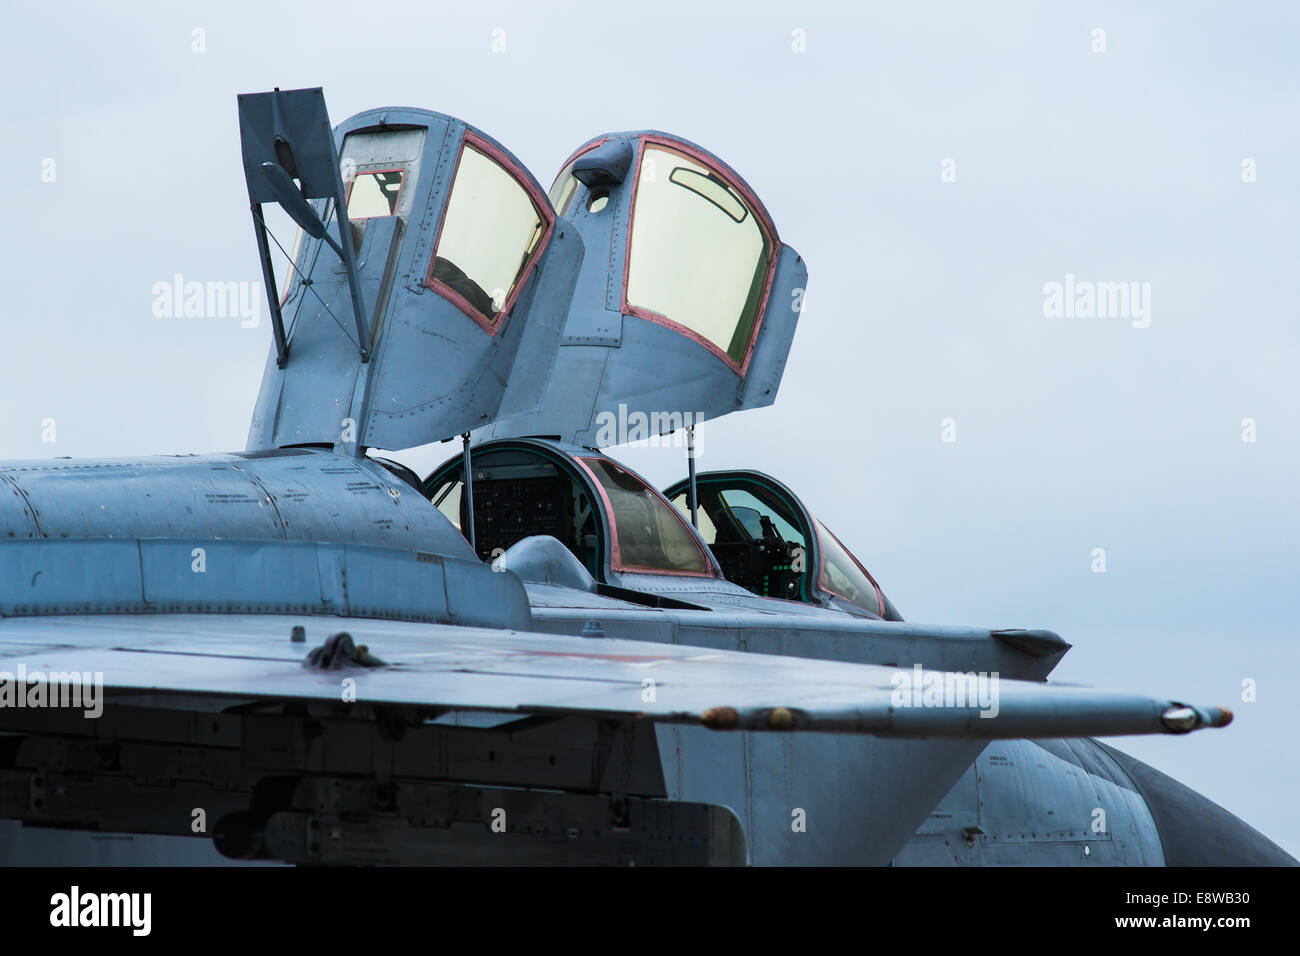 Photo of MiG-31 interceptor plane of Russian Air Force with canopy open at Moscow Aerospace Show 2013 & MiG-31 Cockpit. Photo of MiG-31 interceptor plane of Russian Air ...